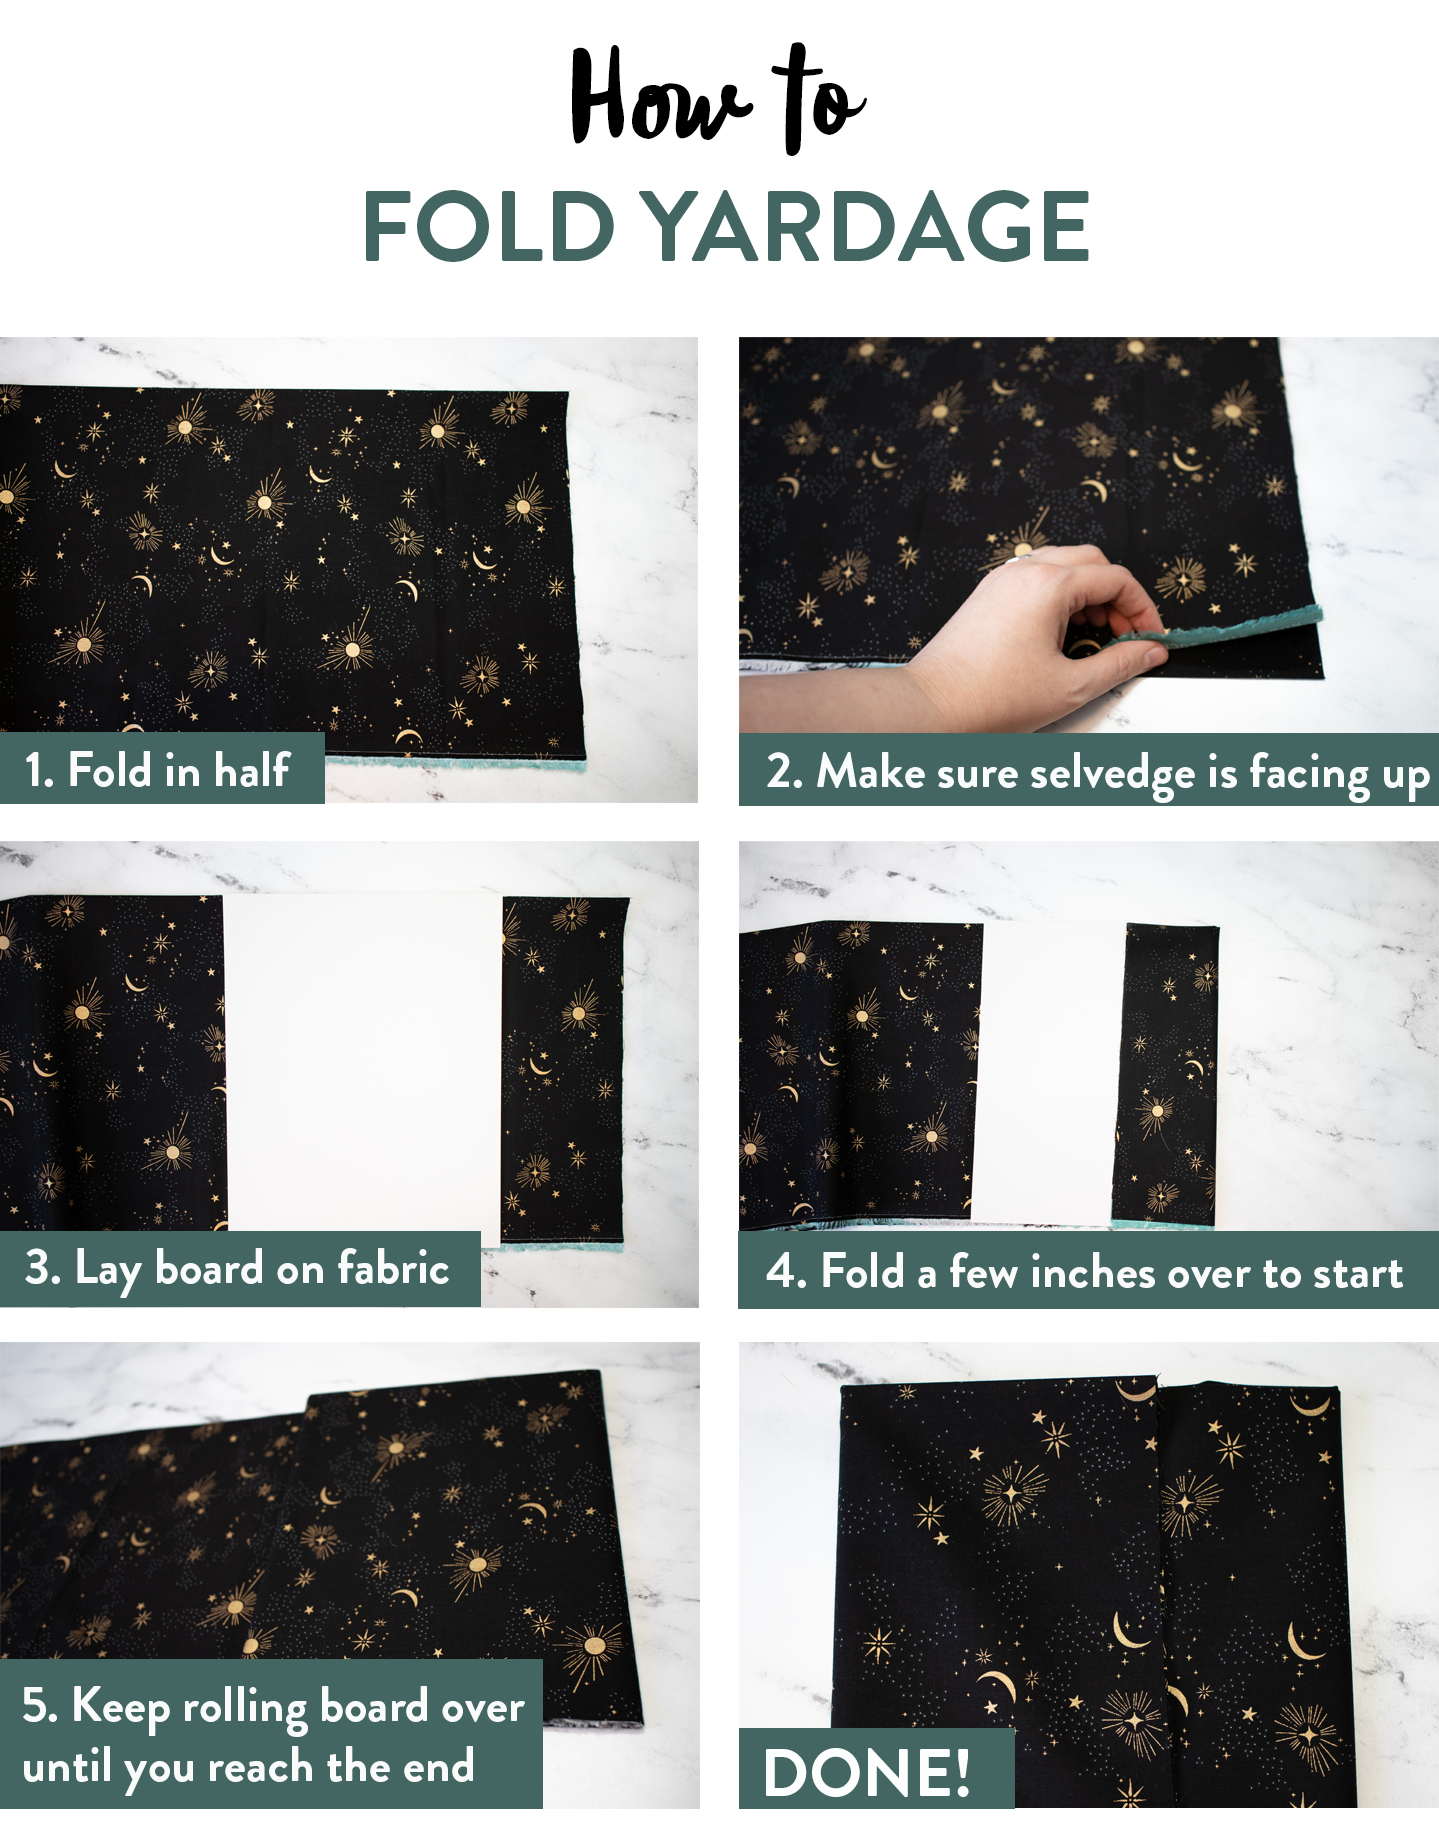 The ultimate guide to folding fabric of different sizes to neatly organize your fabric stash. Step by step photos and instructions show you how to fold fat quarters, half yards, and yardage so you can get started on cleaning your sewing studio.